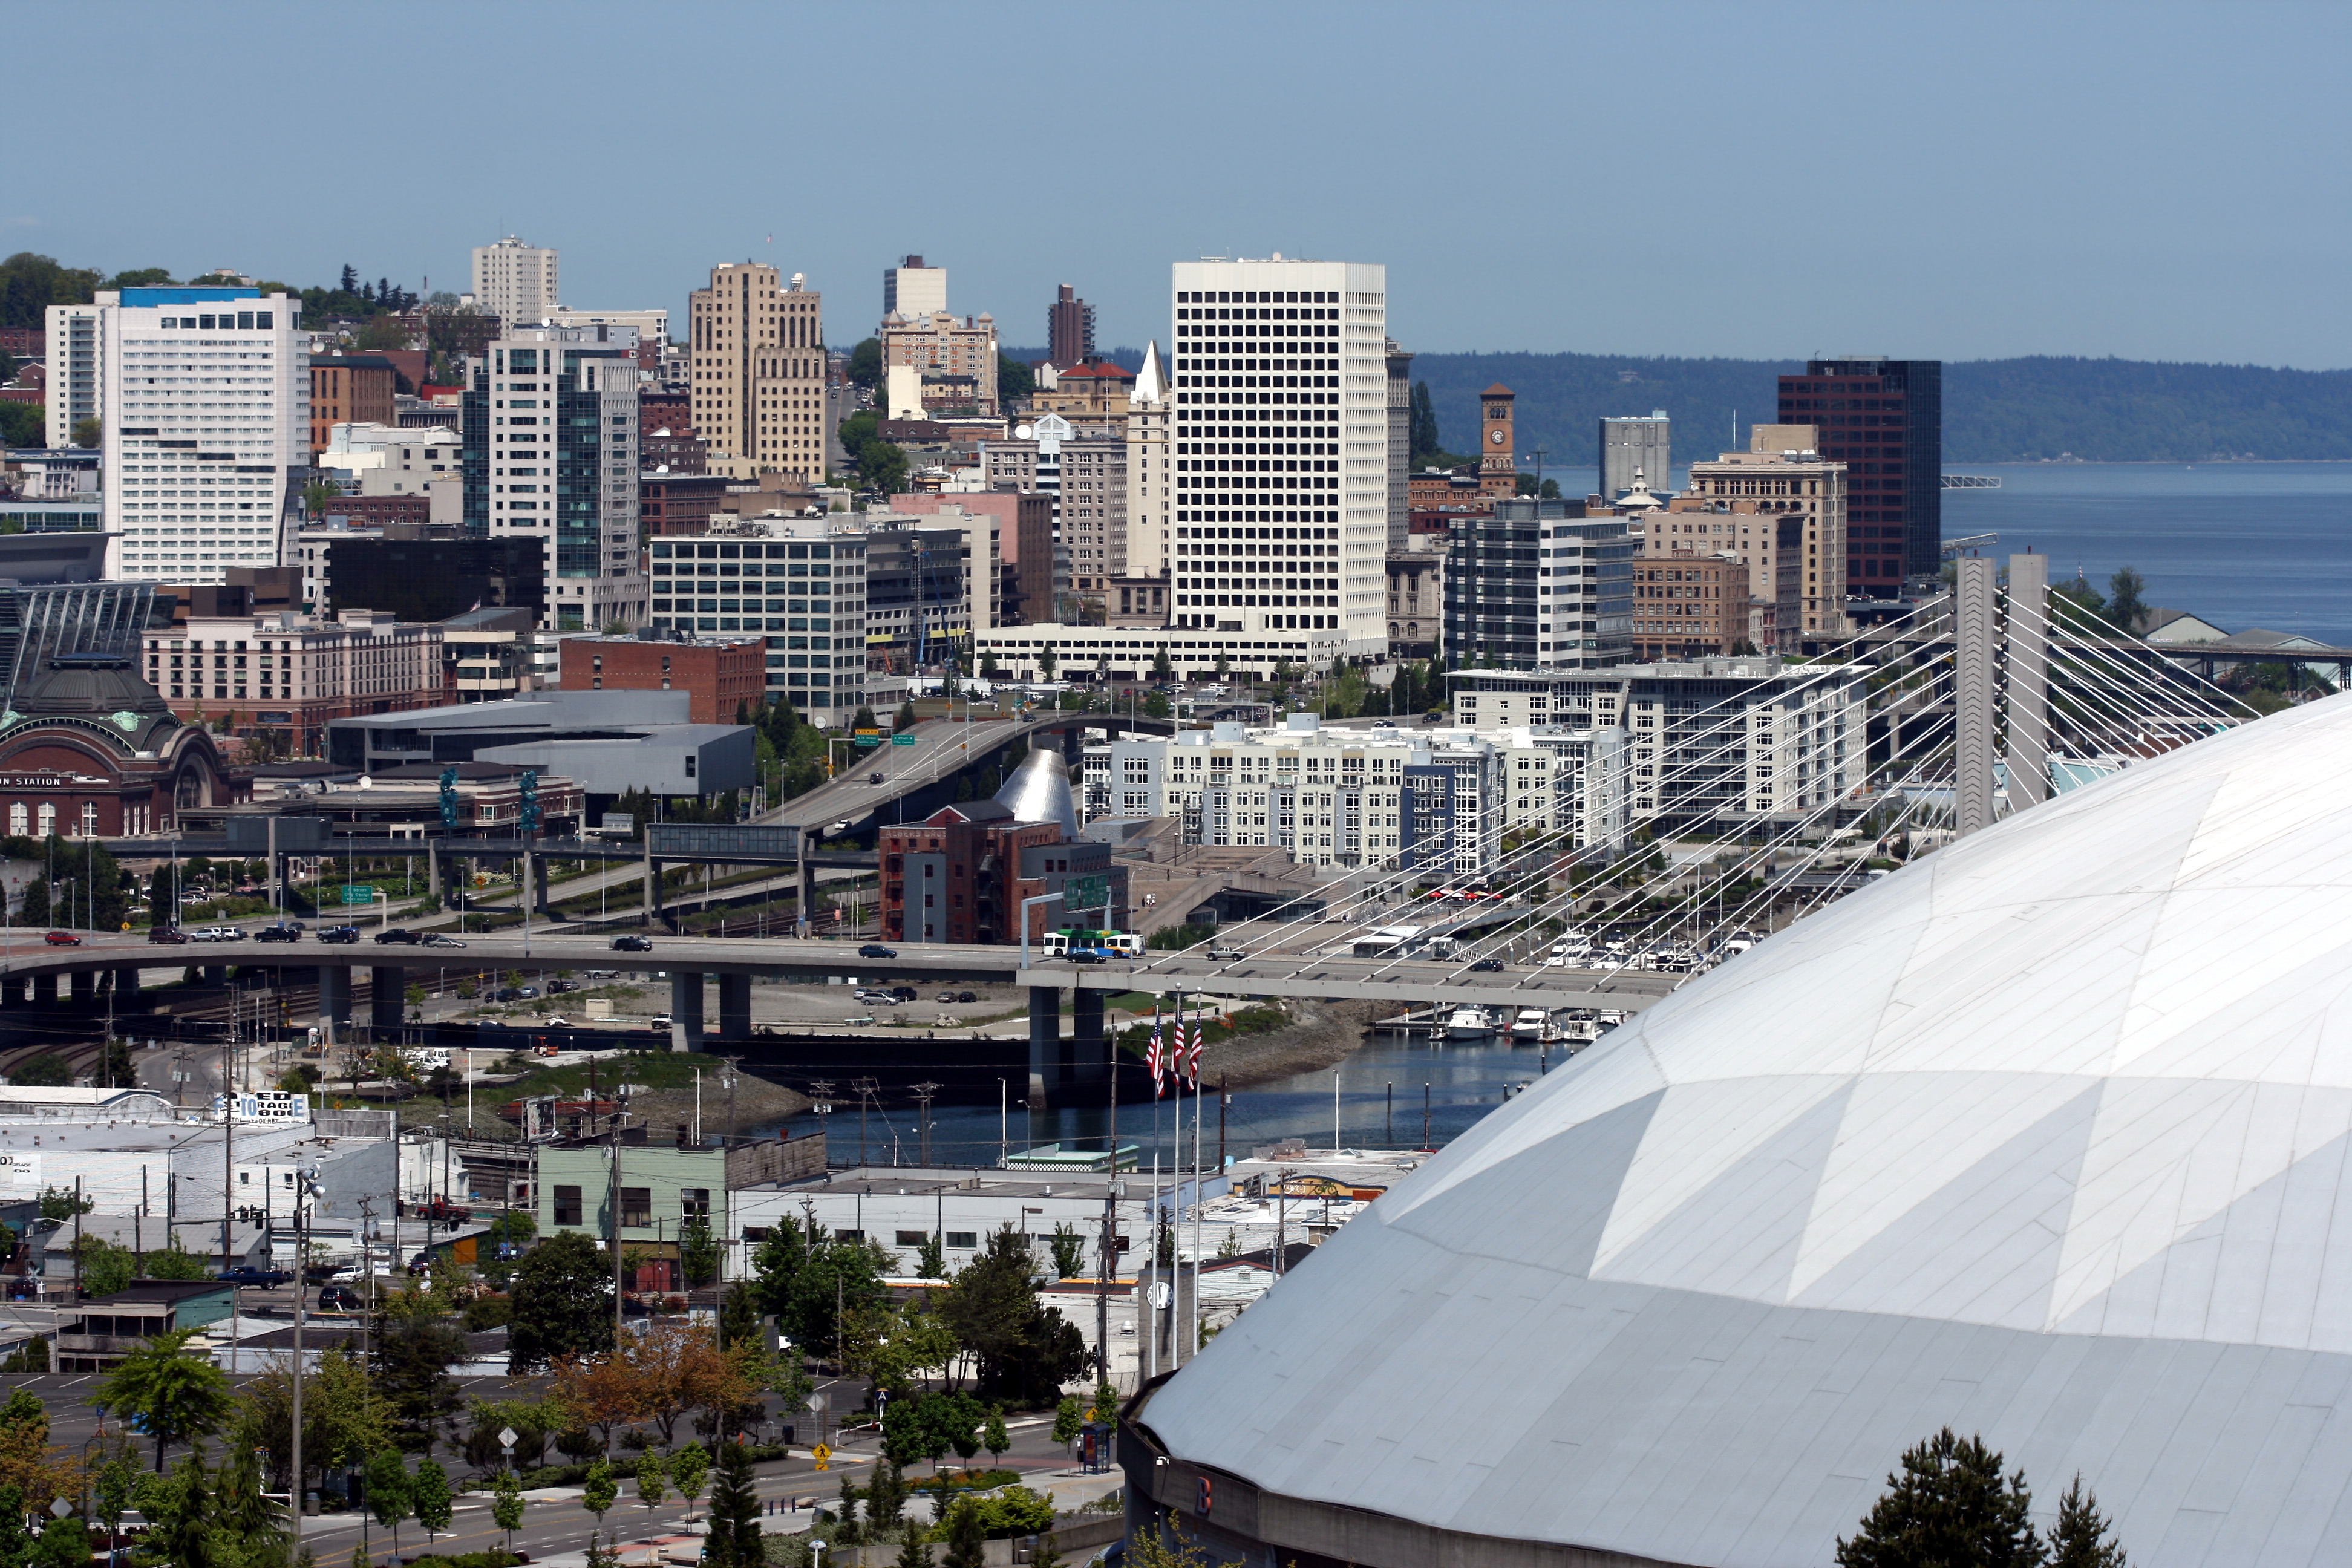 City of Tacoma with major landmarks